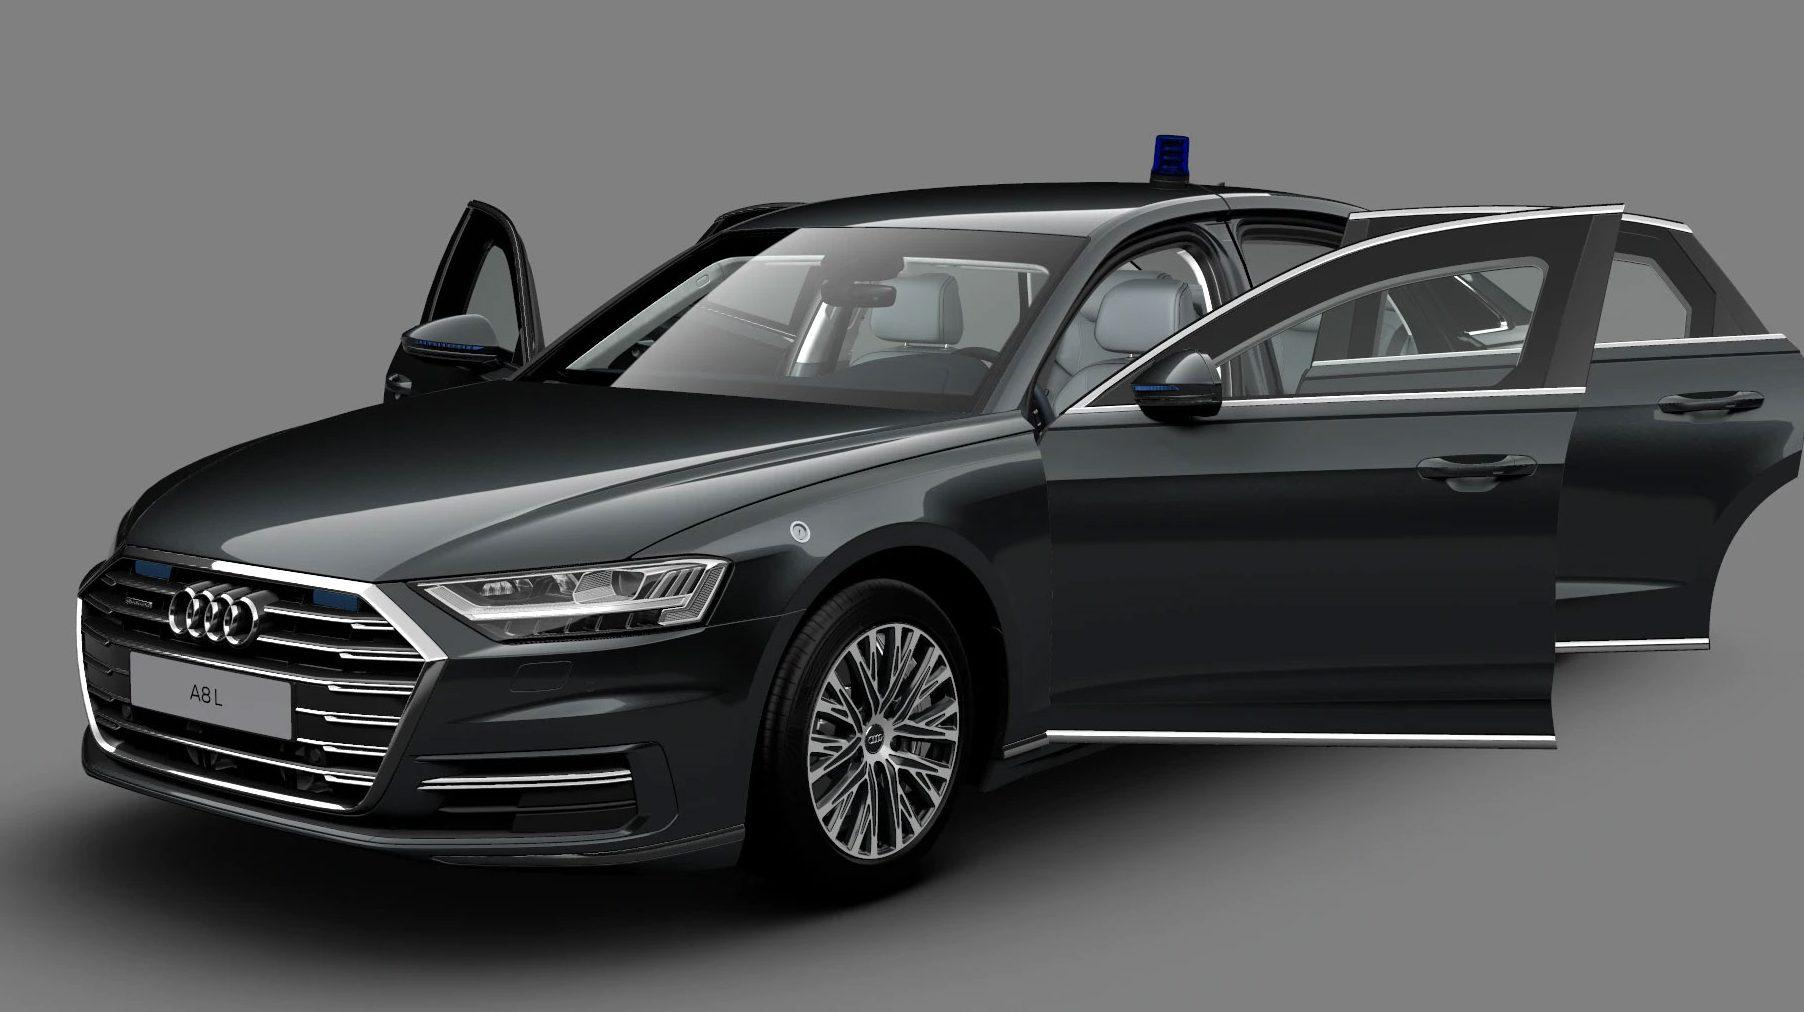 Gepantserde Audi A8 L Security